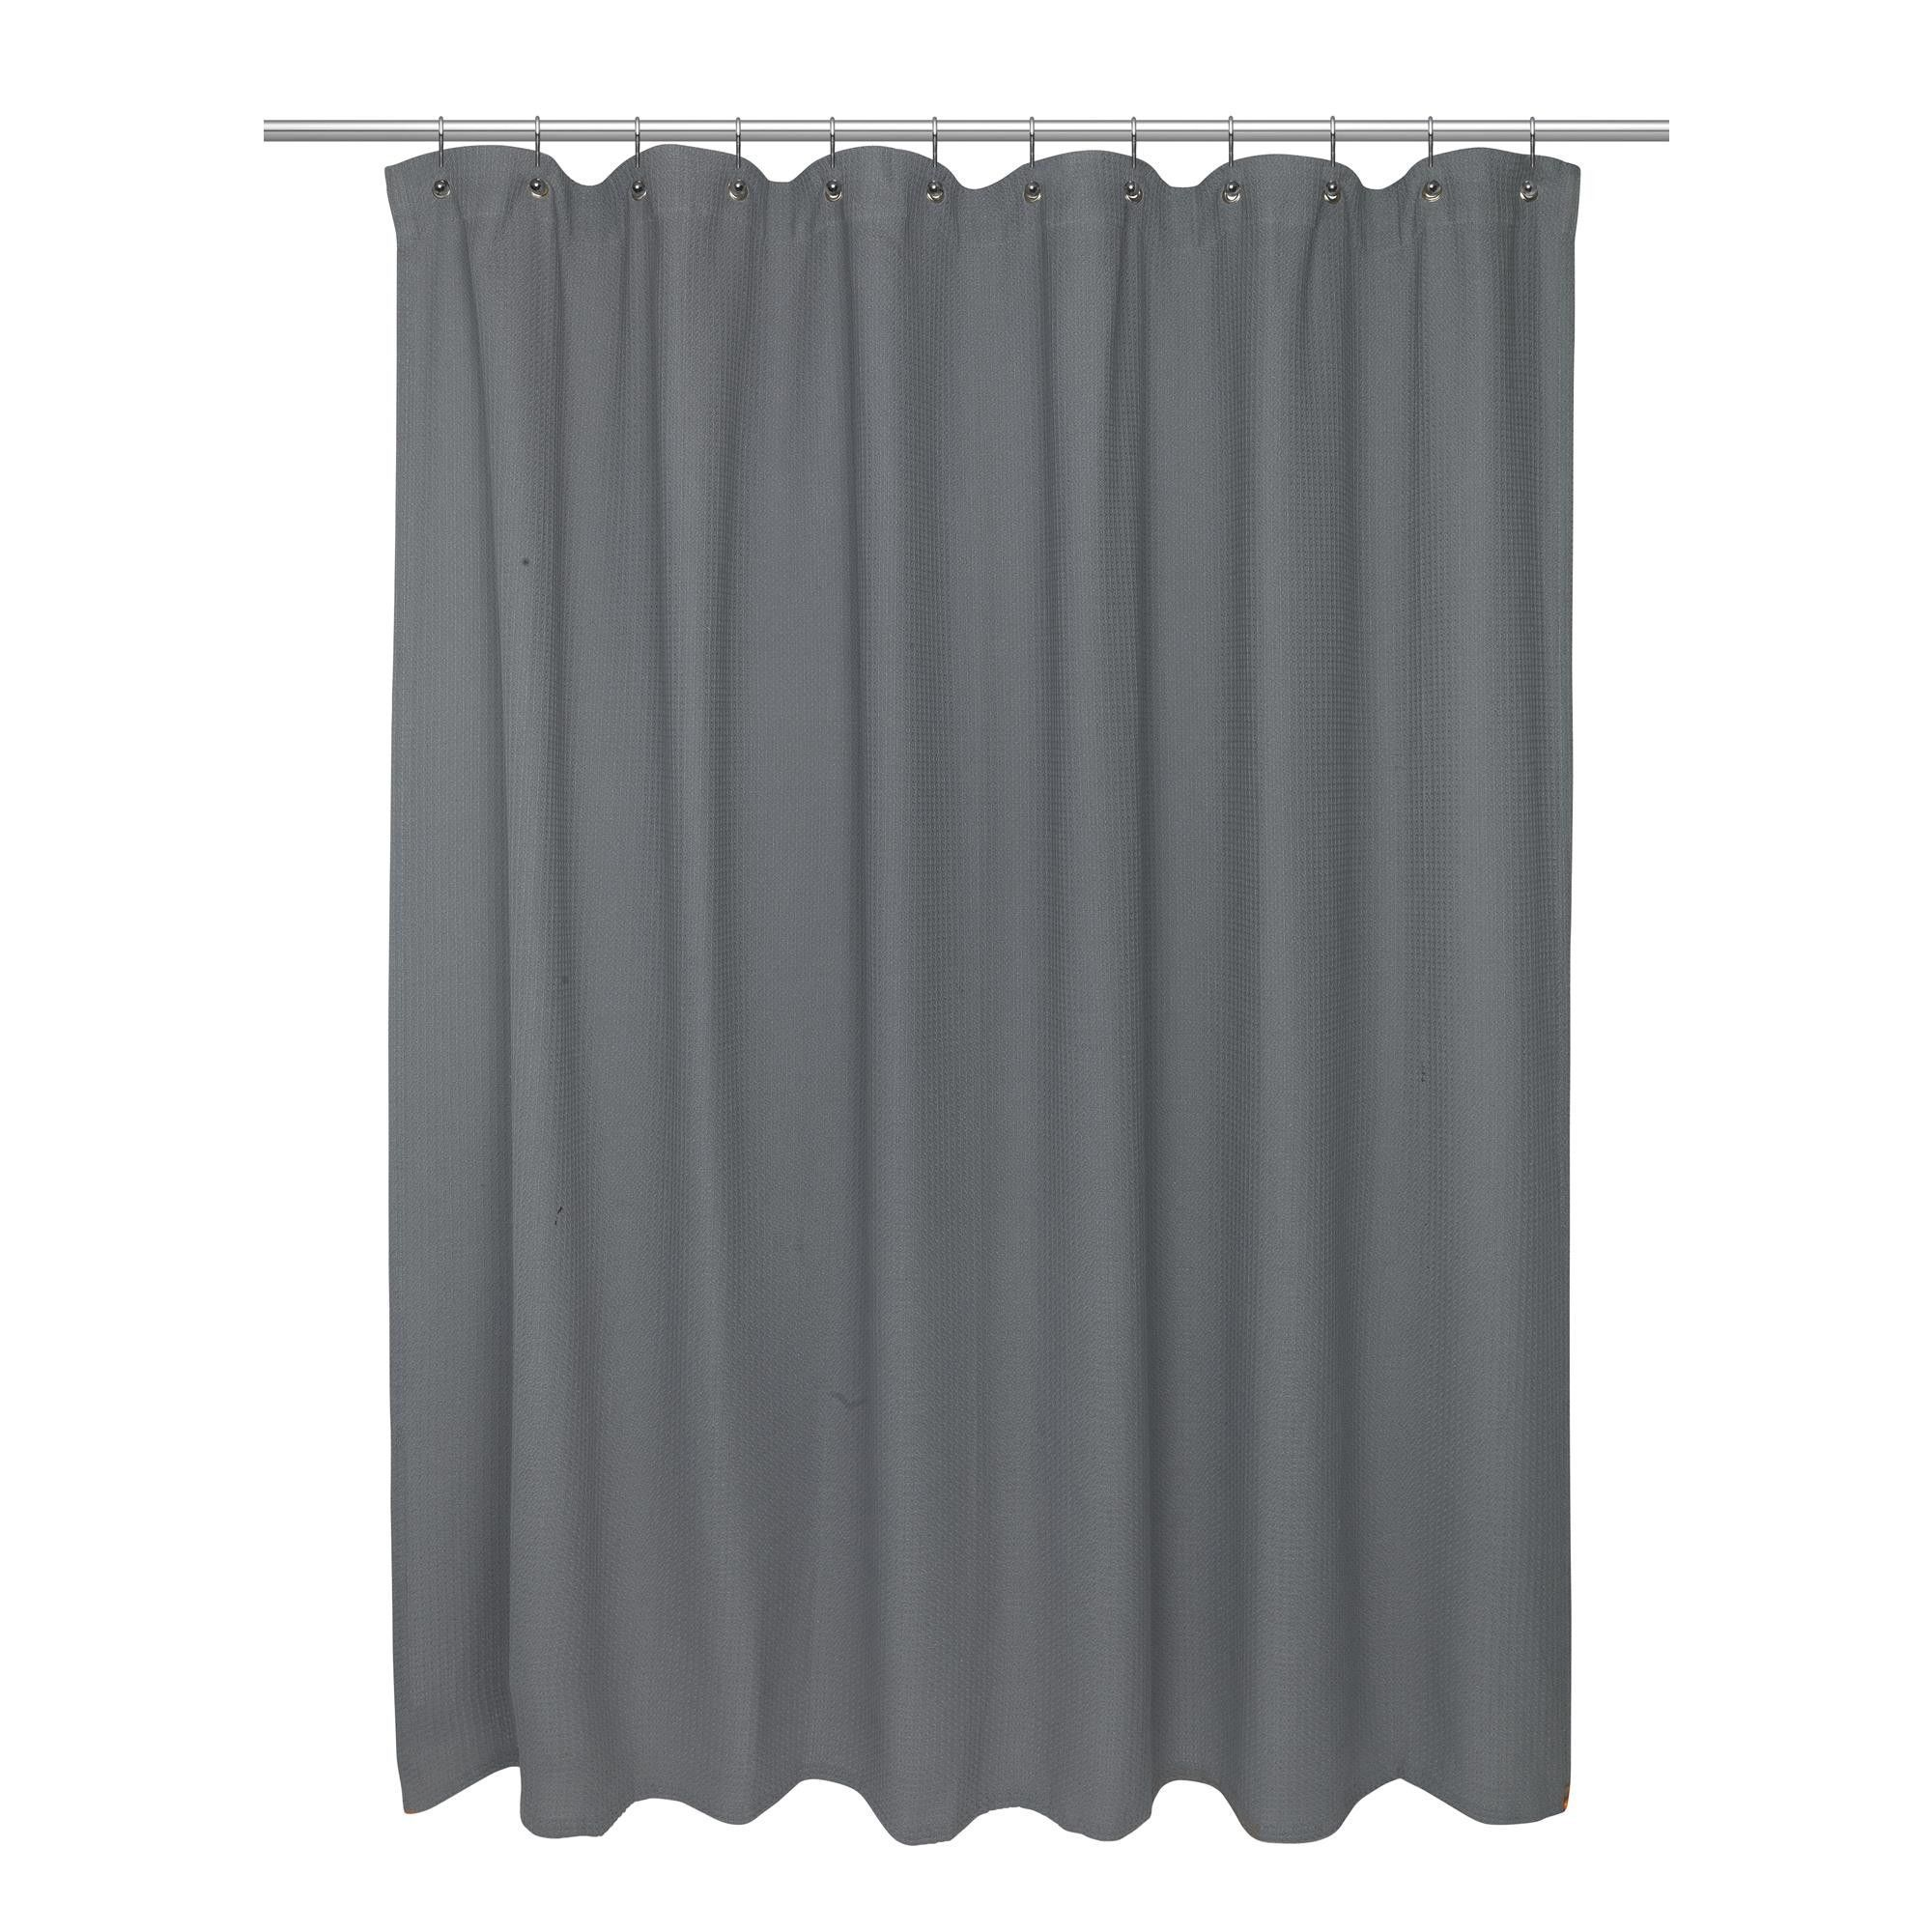 Carnation home standard size cotton waffle weave shower curtain